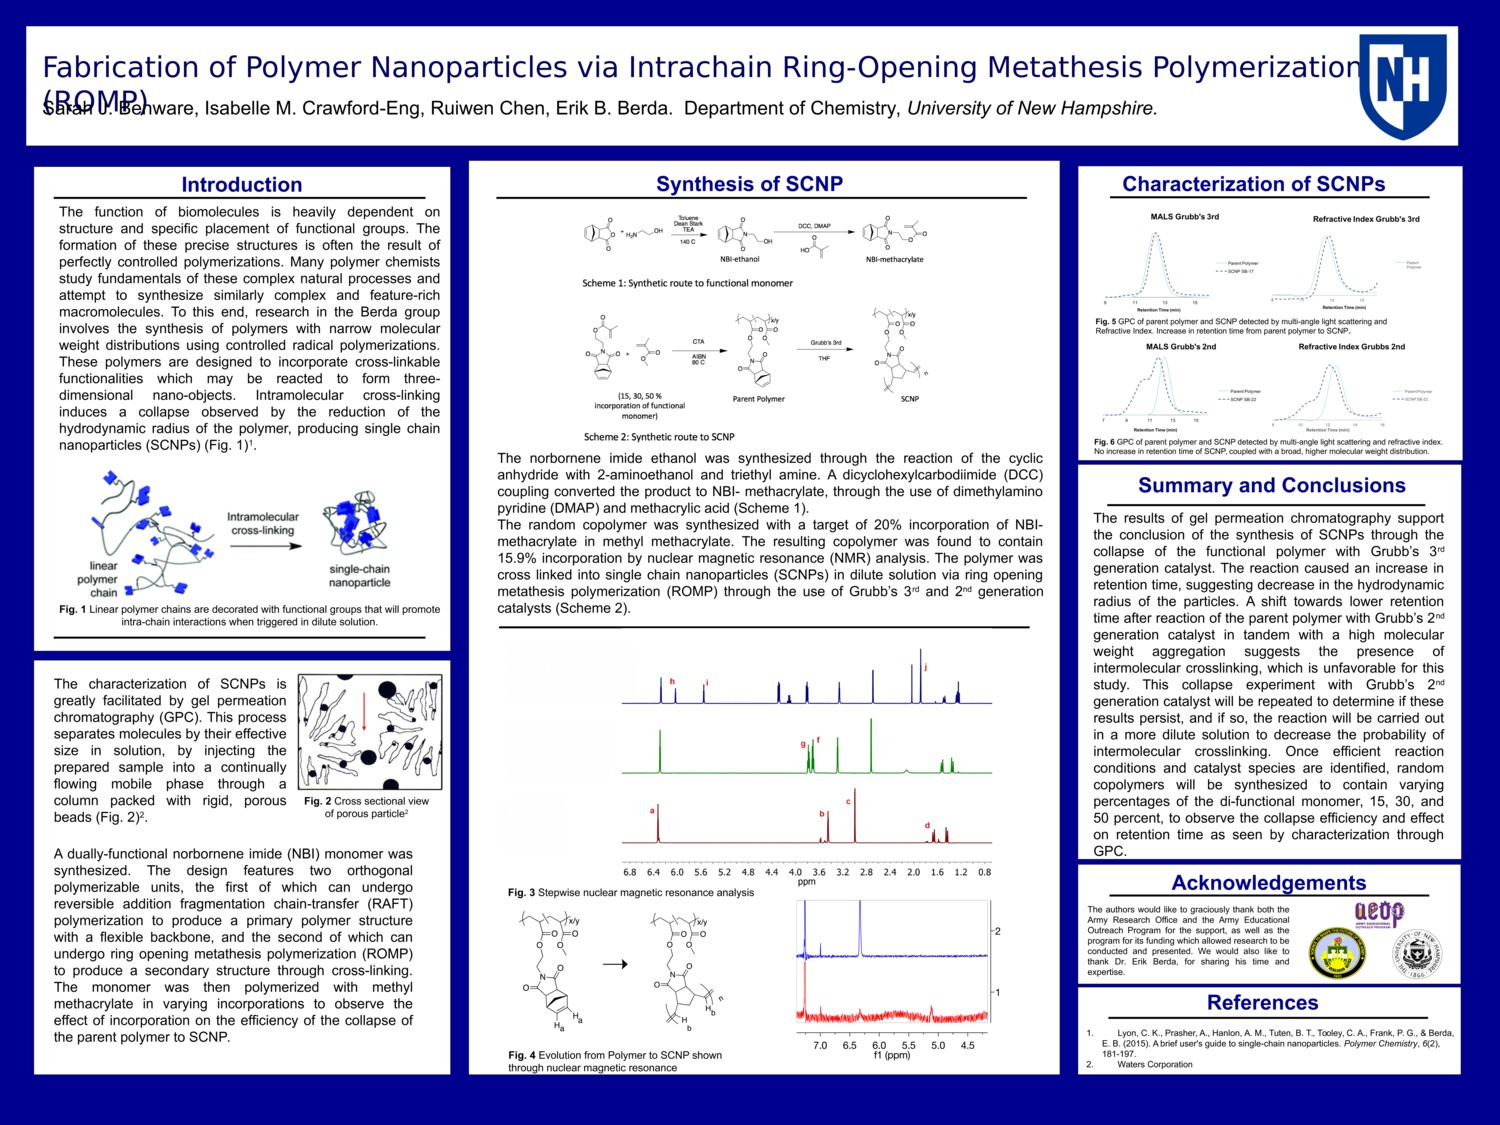 Fabrication Of Polymer Nanoparticles Via Intrachain Ring-Opening Metathesis Polymerizations (Romp) by sjb1015